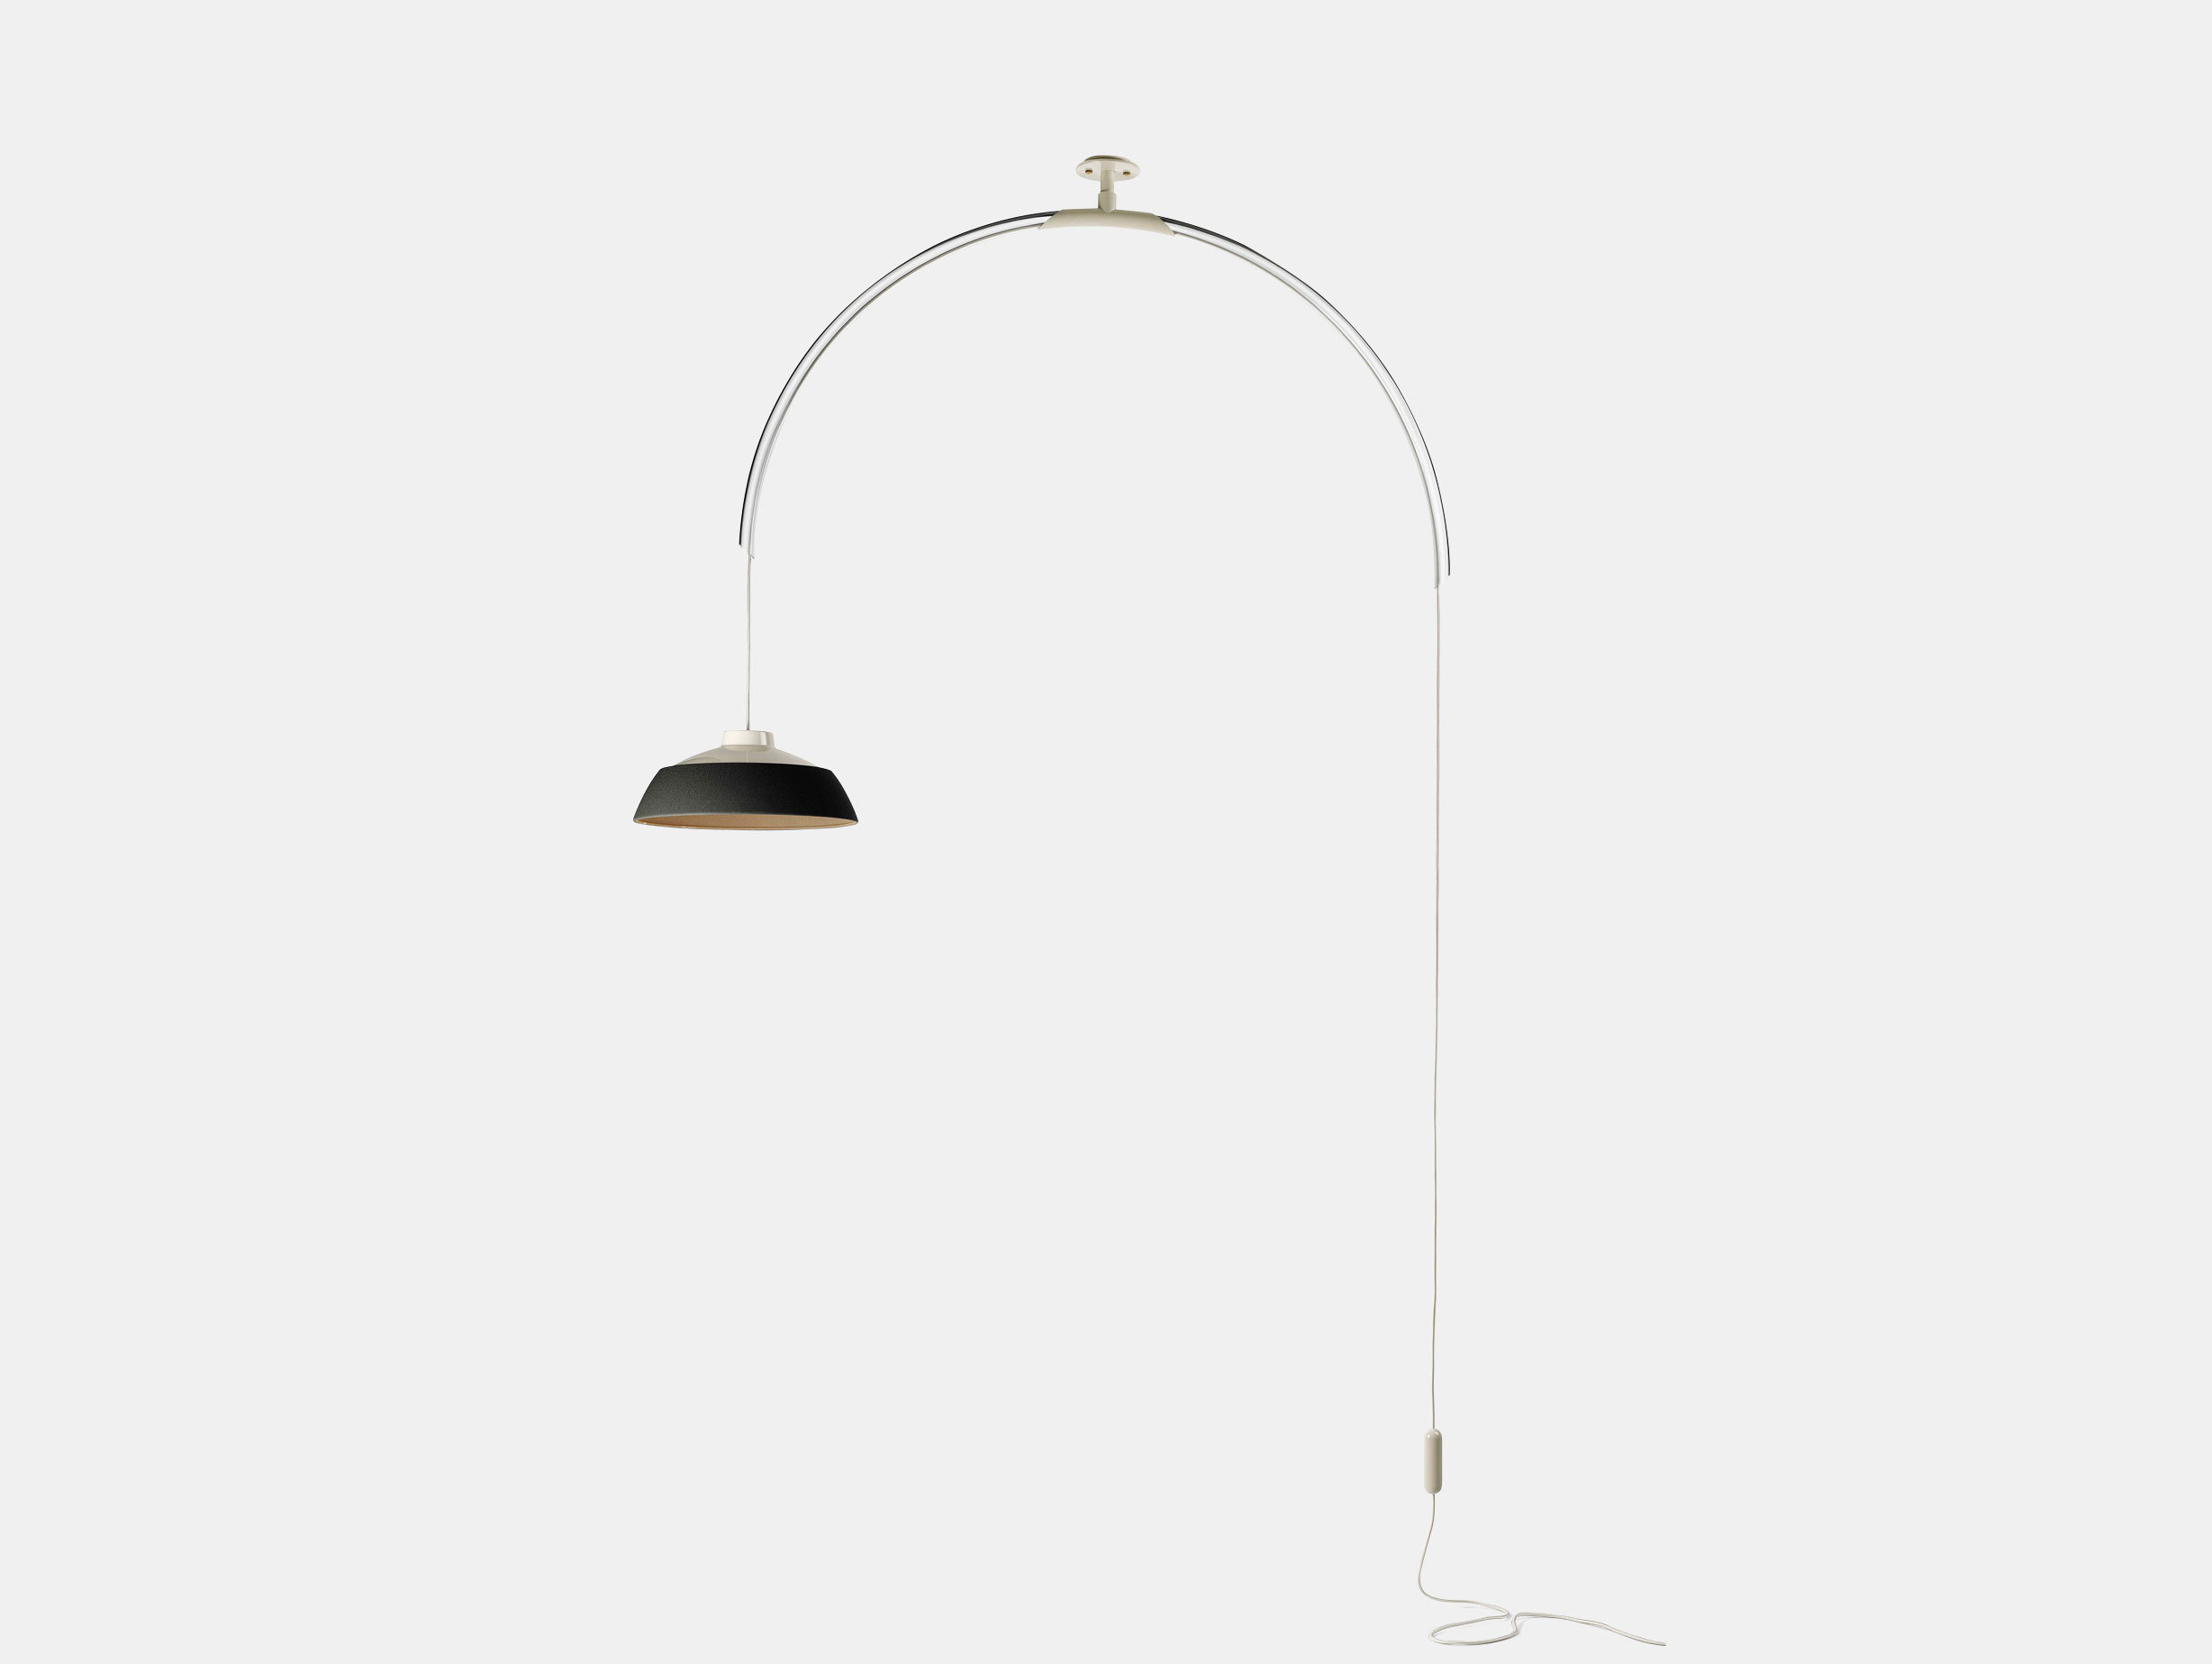 Model 2129 Suspension Lamp image 1